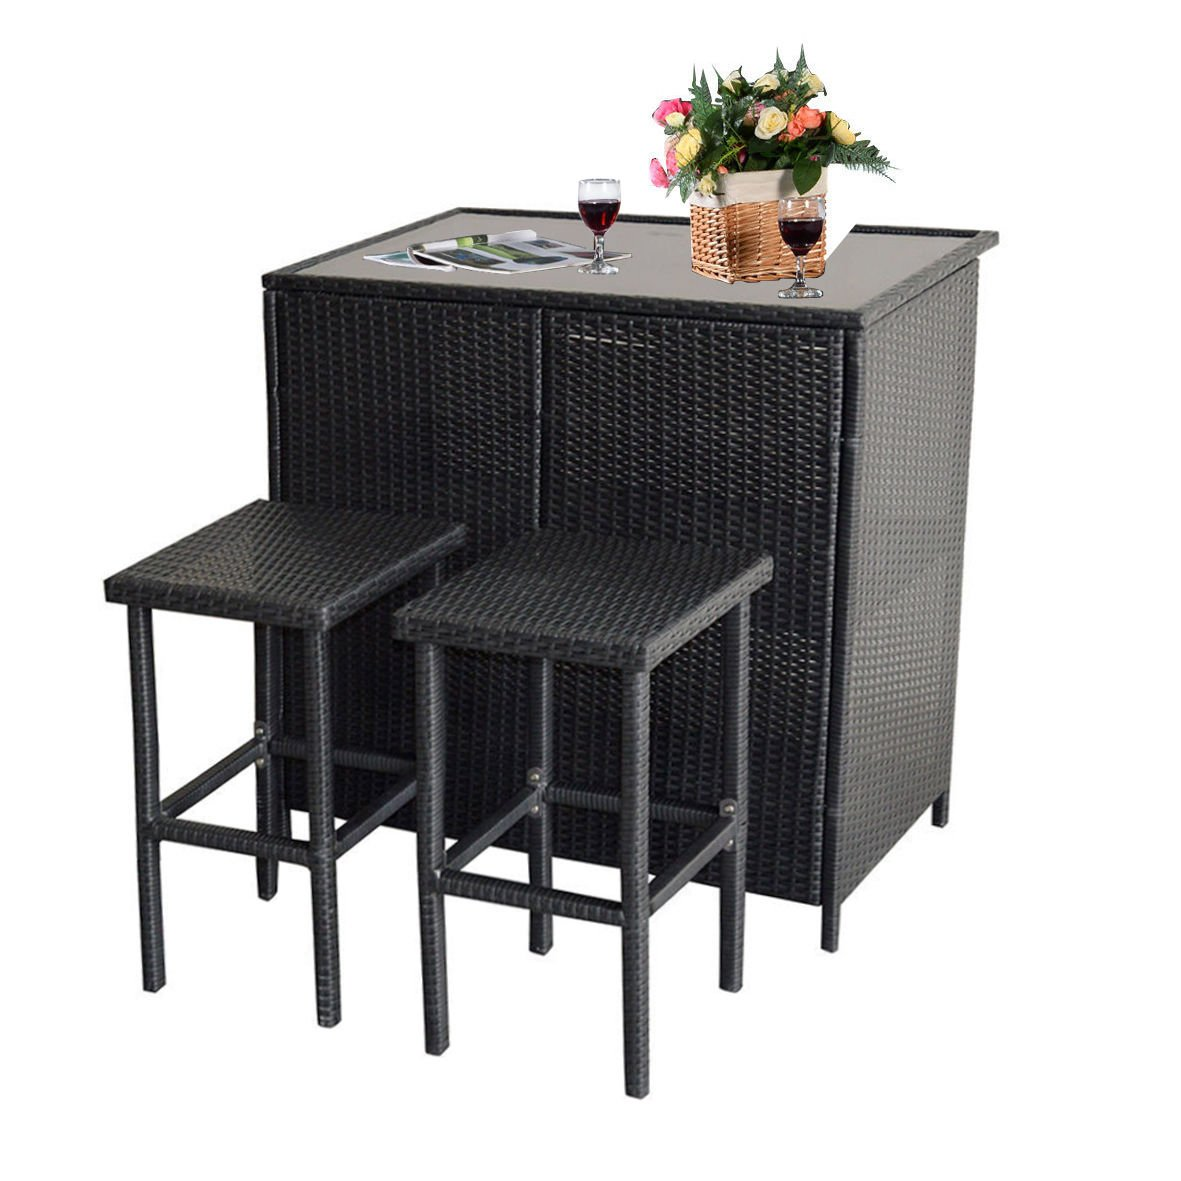 Mcombo 3PCS Black Wicker Bar Set Patio Outdoor Table & 2 Stools Furniture Steel 6088-1200